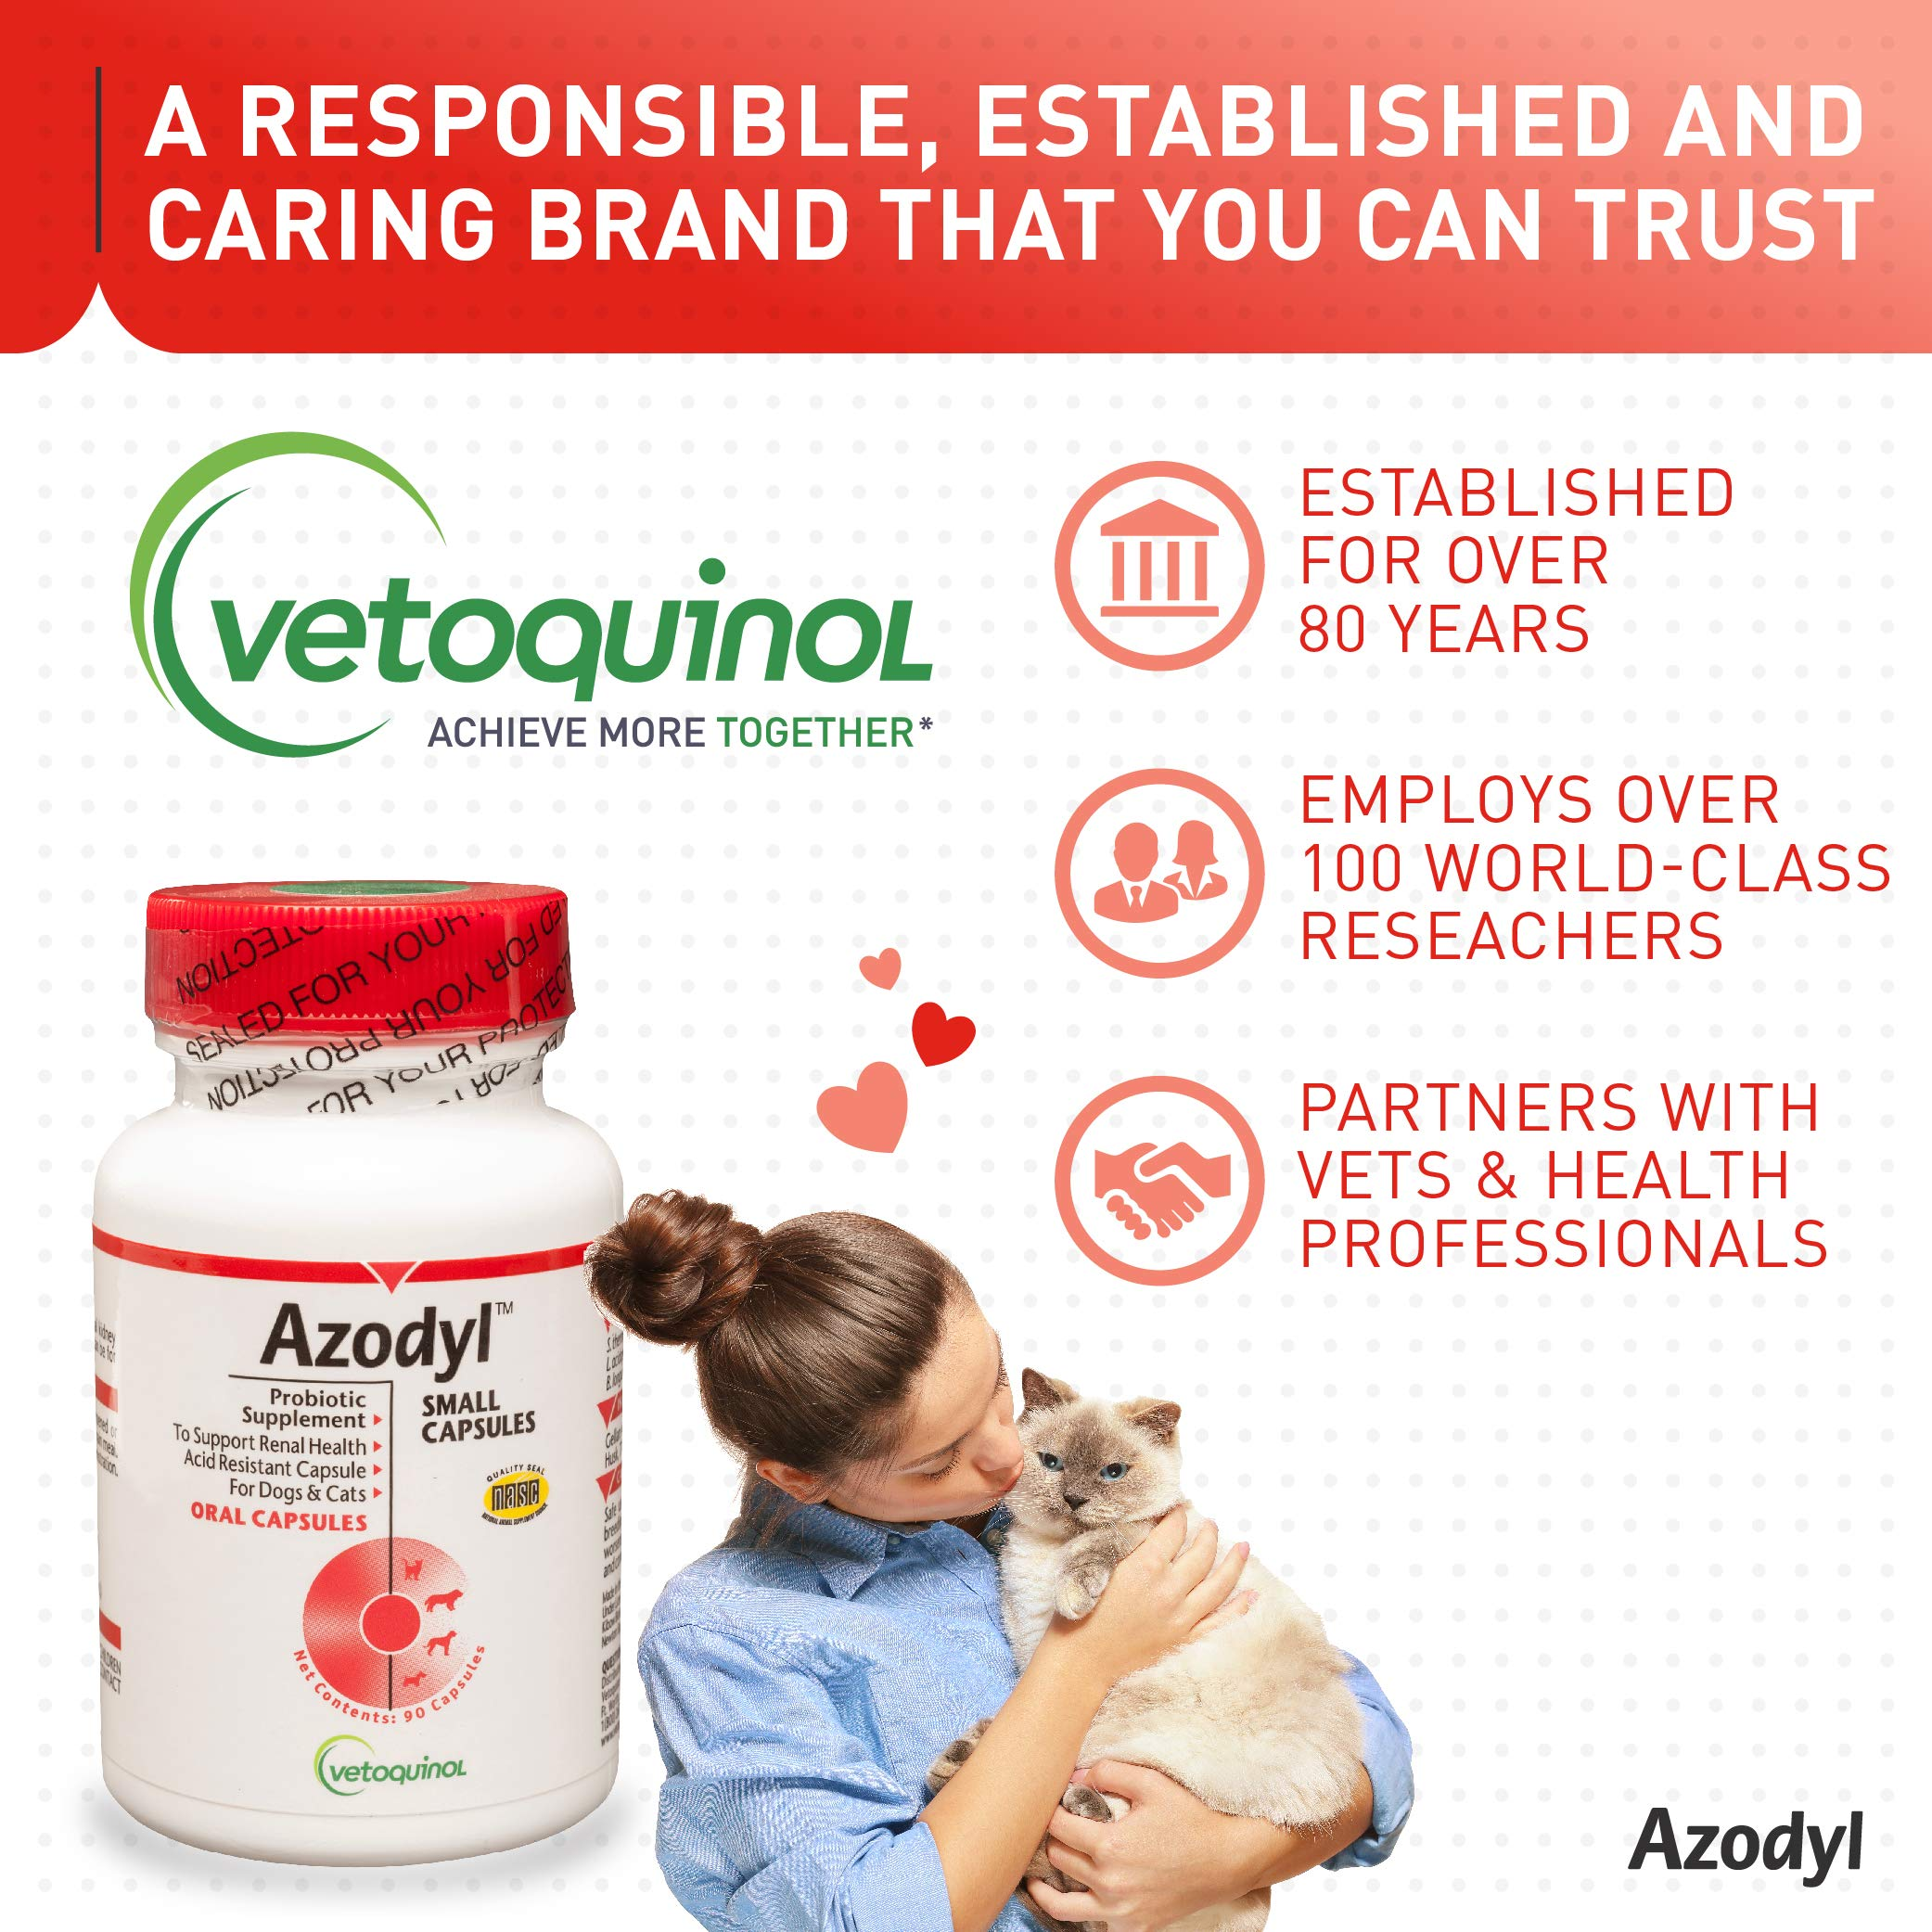 Vetoquinol Azodyl Kidney Health Supplement for Dogs & Cats, 90ct - Probiotic Pet Well-being - Help Support Kidney Function & Manage Renal Toxins - Renal Care Supplement - Easy-to-Swallow Small Caps by Vetoquinol (Image #6)